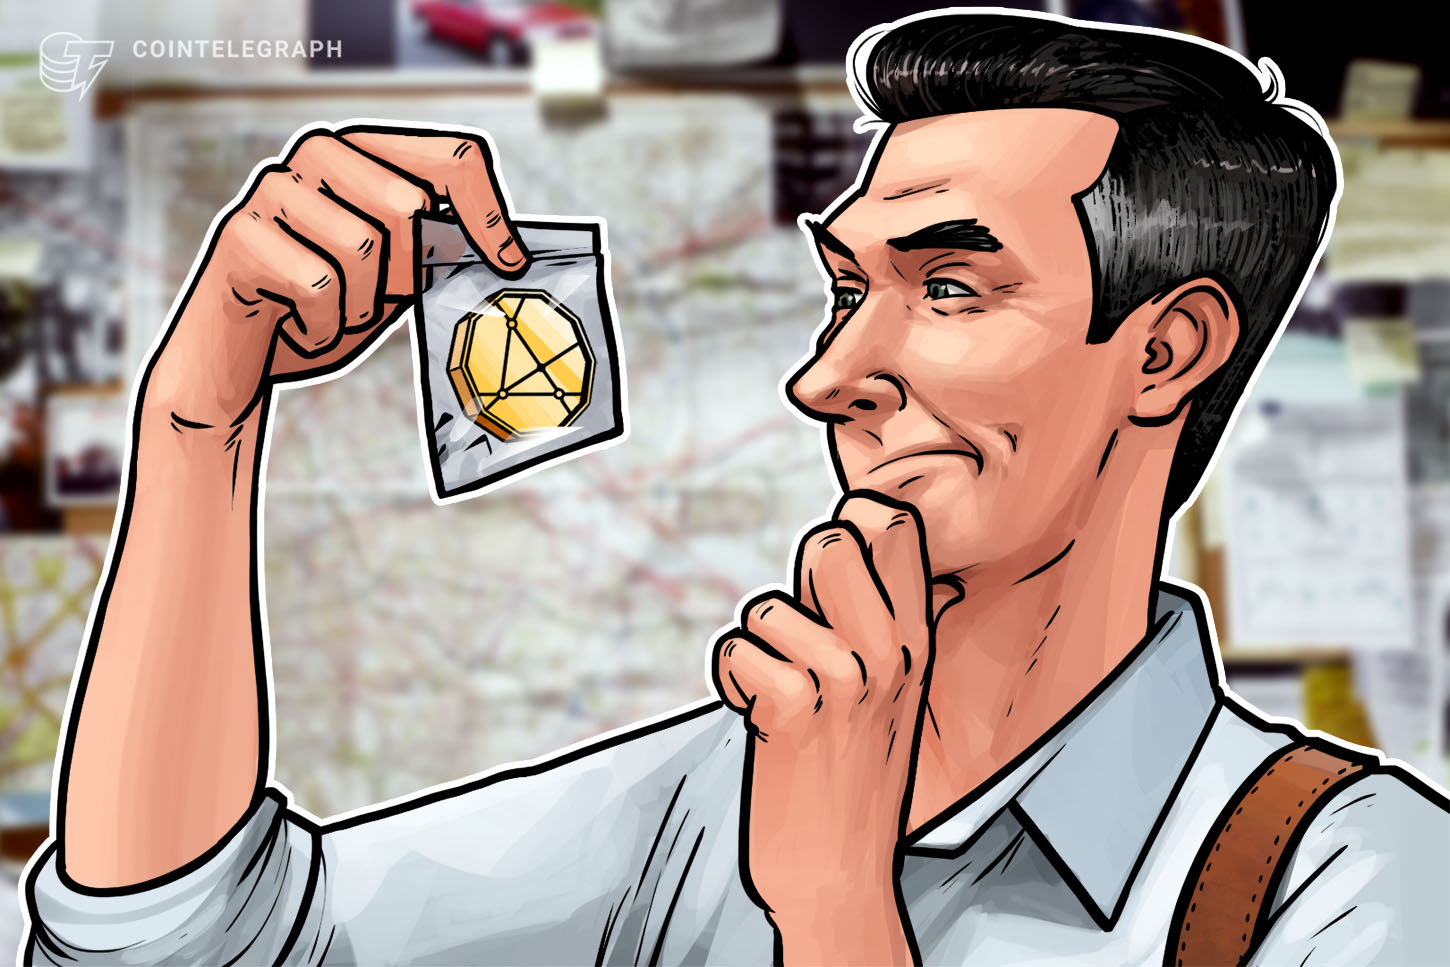 Texas Regulators Take Aim at South African Cryptocurrency MLM Scheme - Cointelegraph